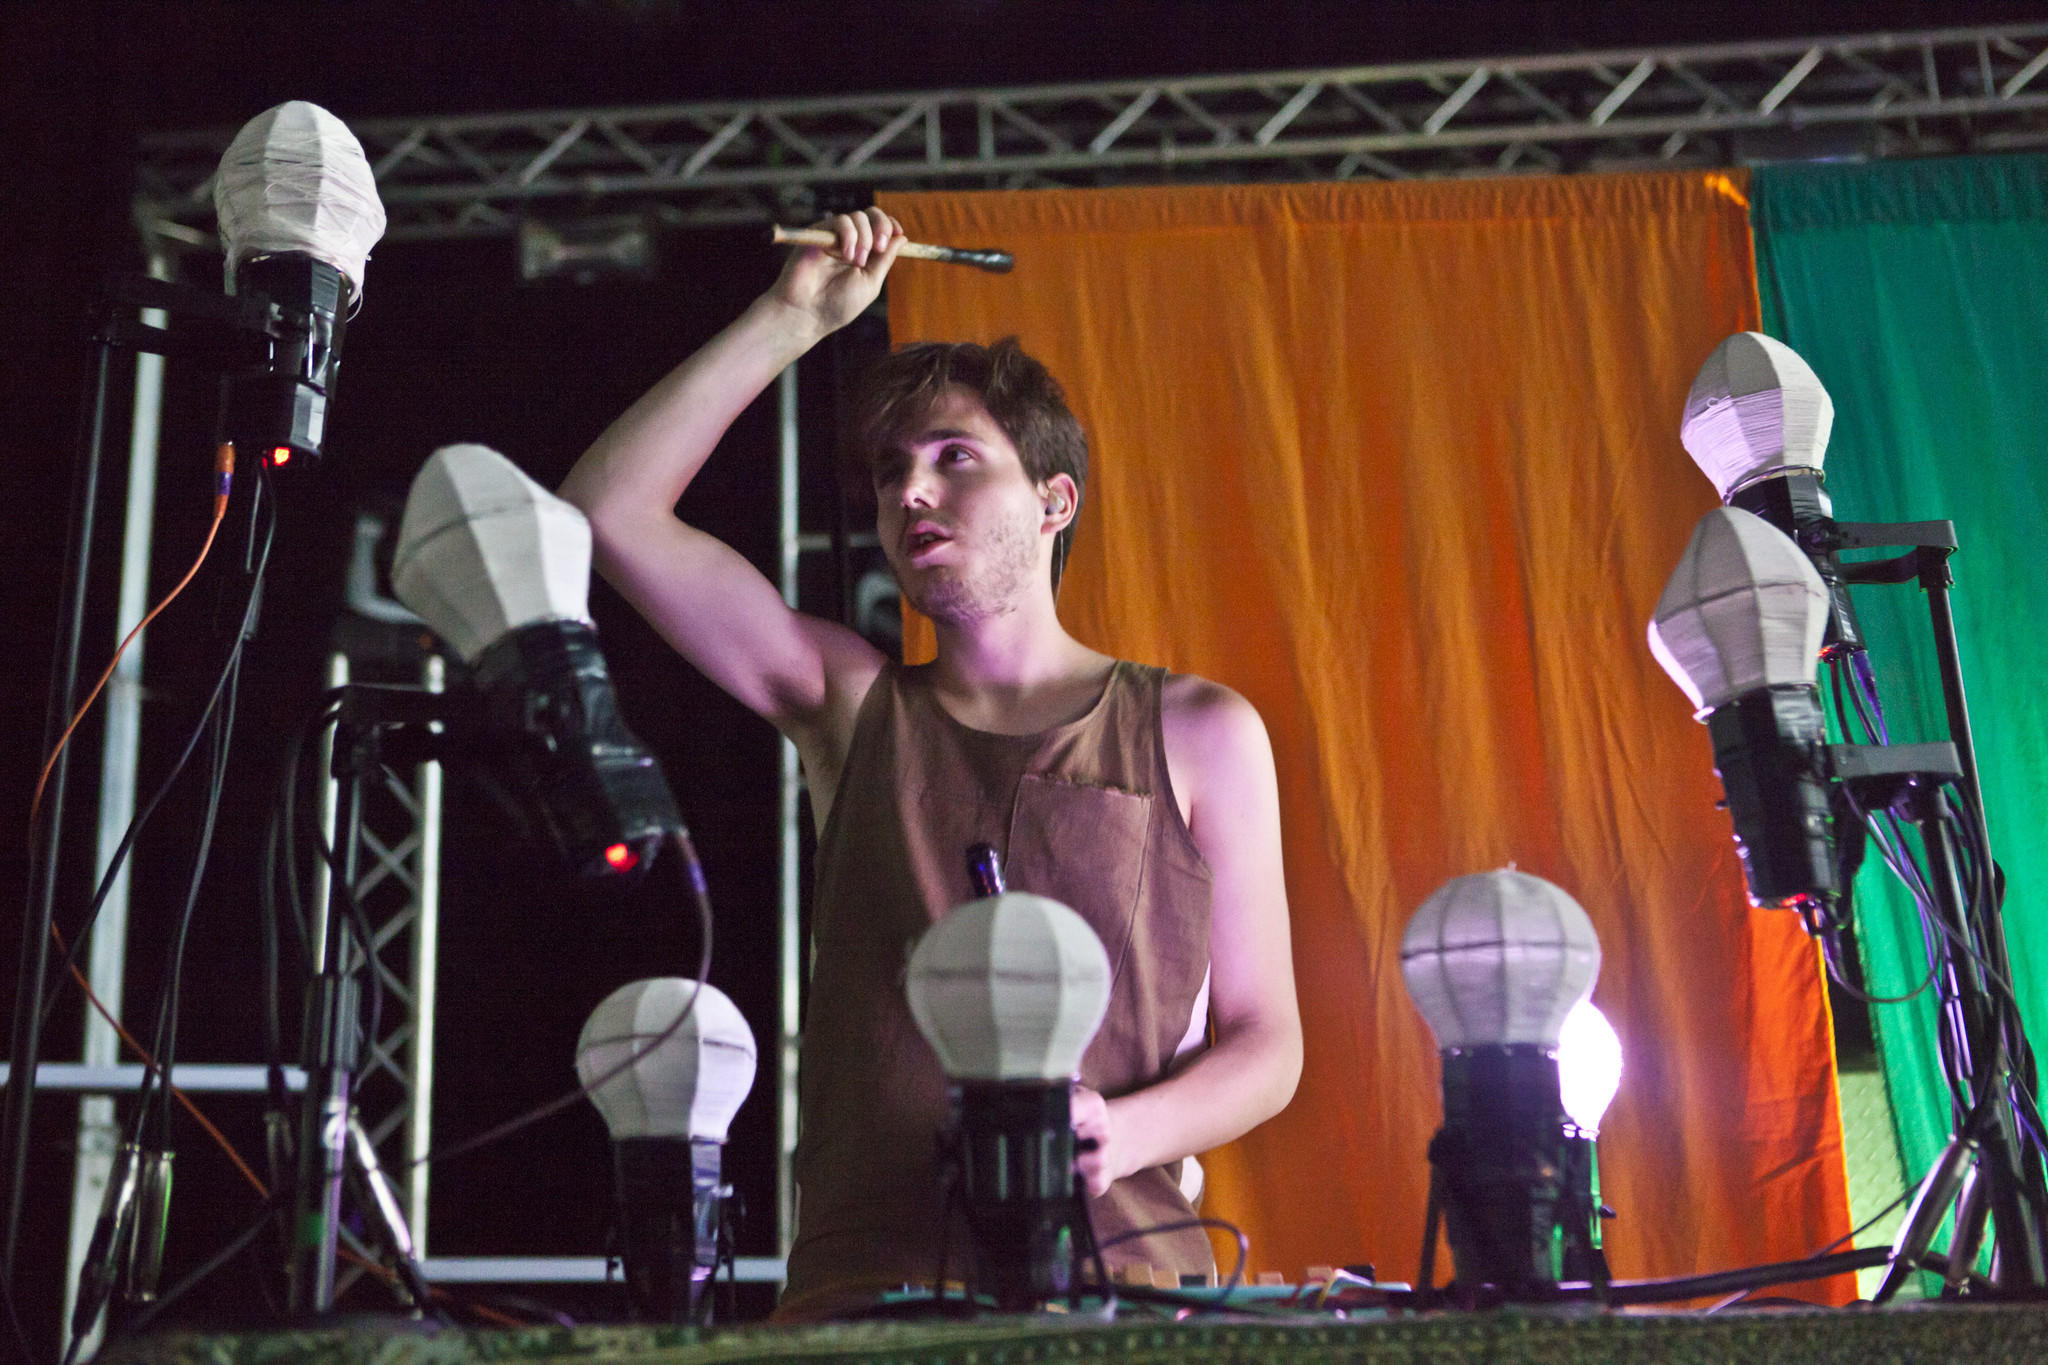 Corin Roddick, one half of Purity Ring, performs at DJ set at The Mid this weekend.